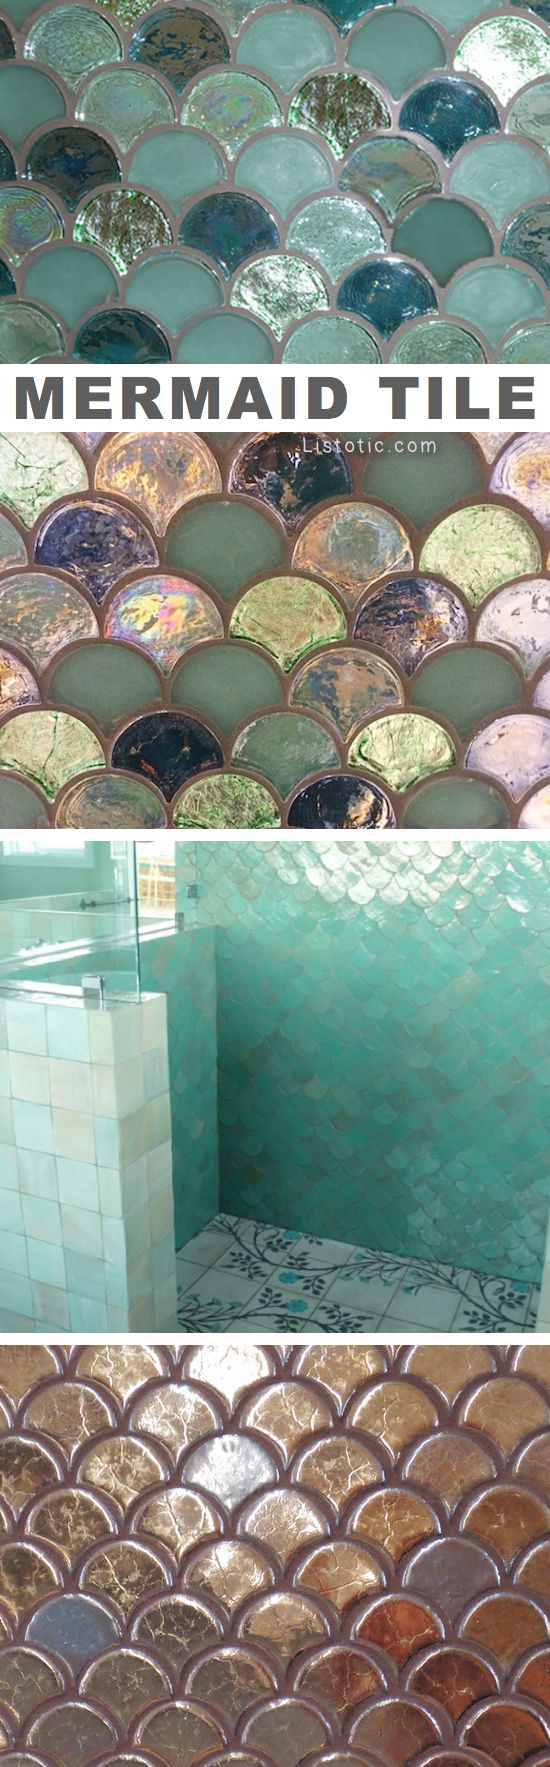 11 Stunning Tile Ideas For Your Home (Decor Ideas) | Mermaid tile ...